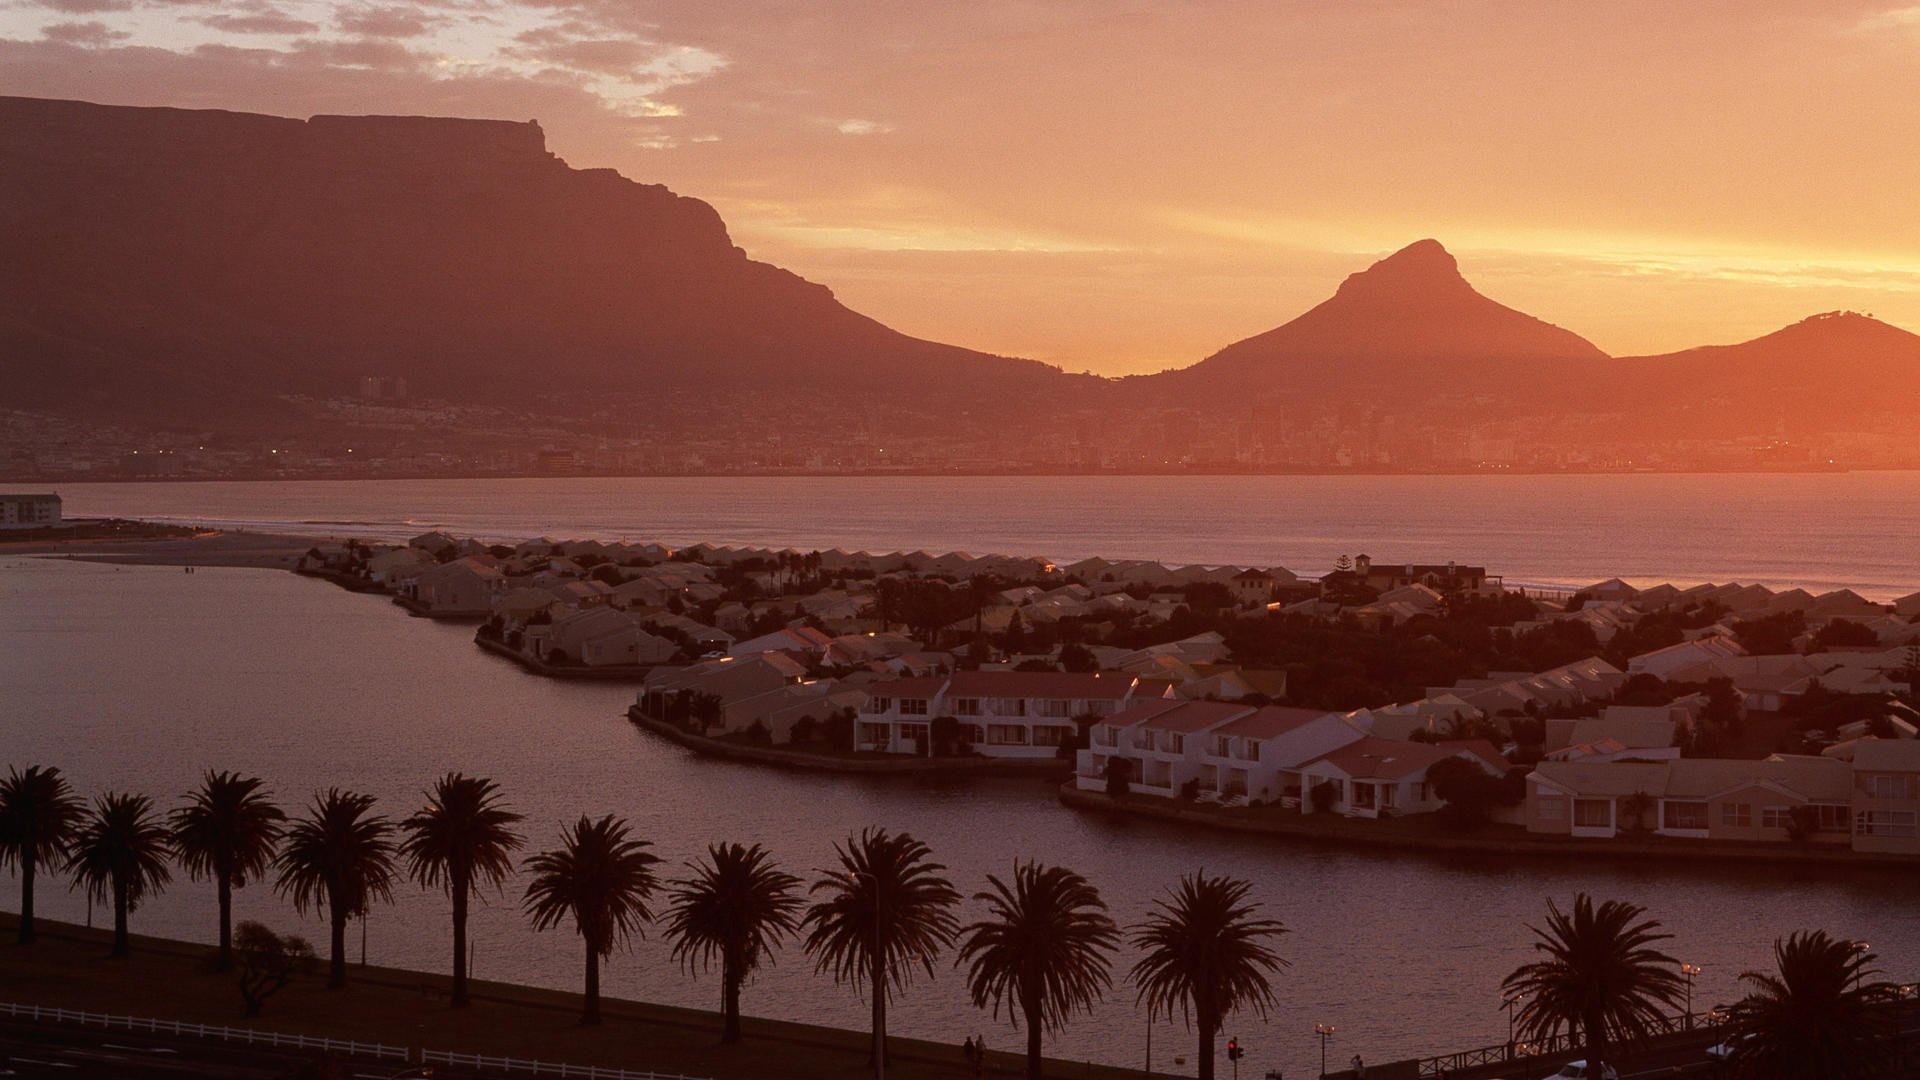 Africa wallpapers photos and desktop backgrounds up to 8k - Table mountain wallpaper ...